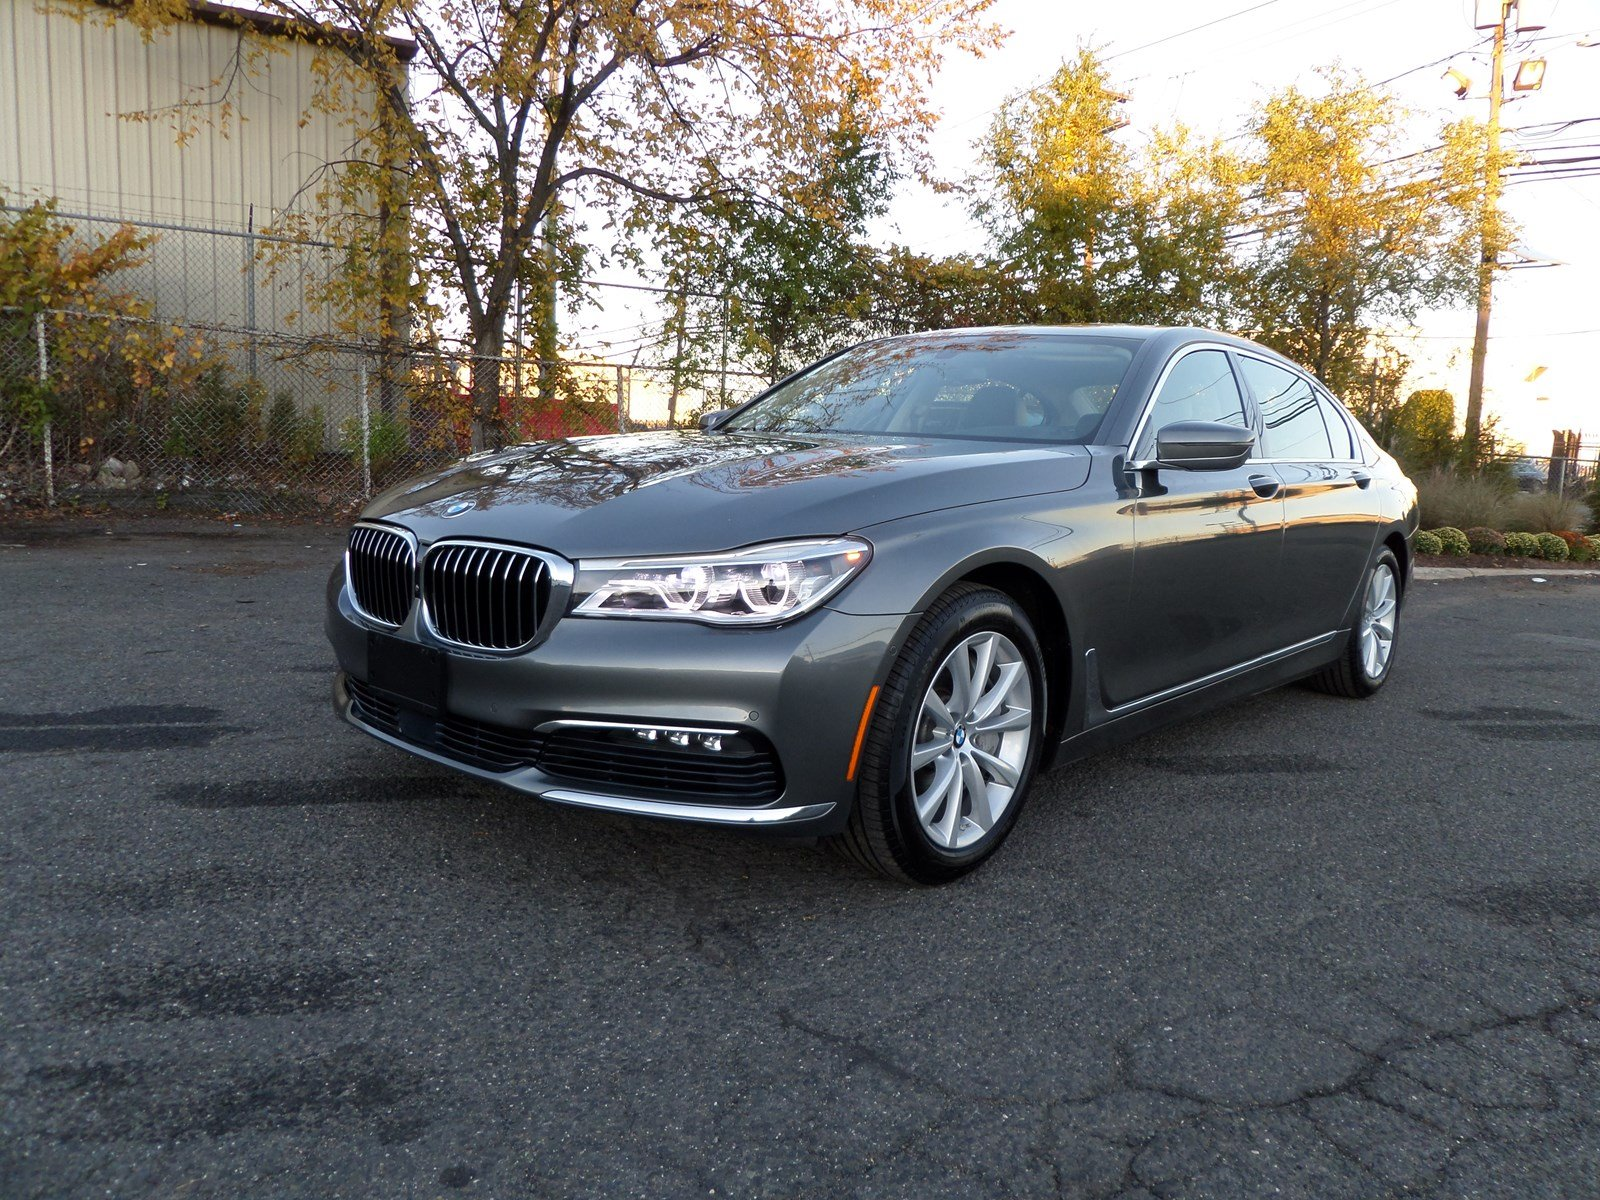 Pre Owned 2016 BMW 7 Series 750i xDrive 4dr Car in Teterboro